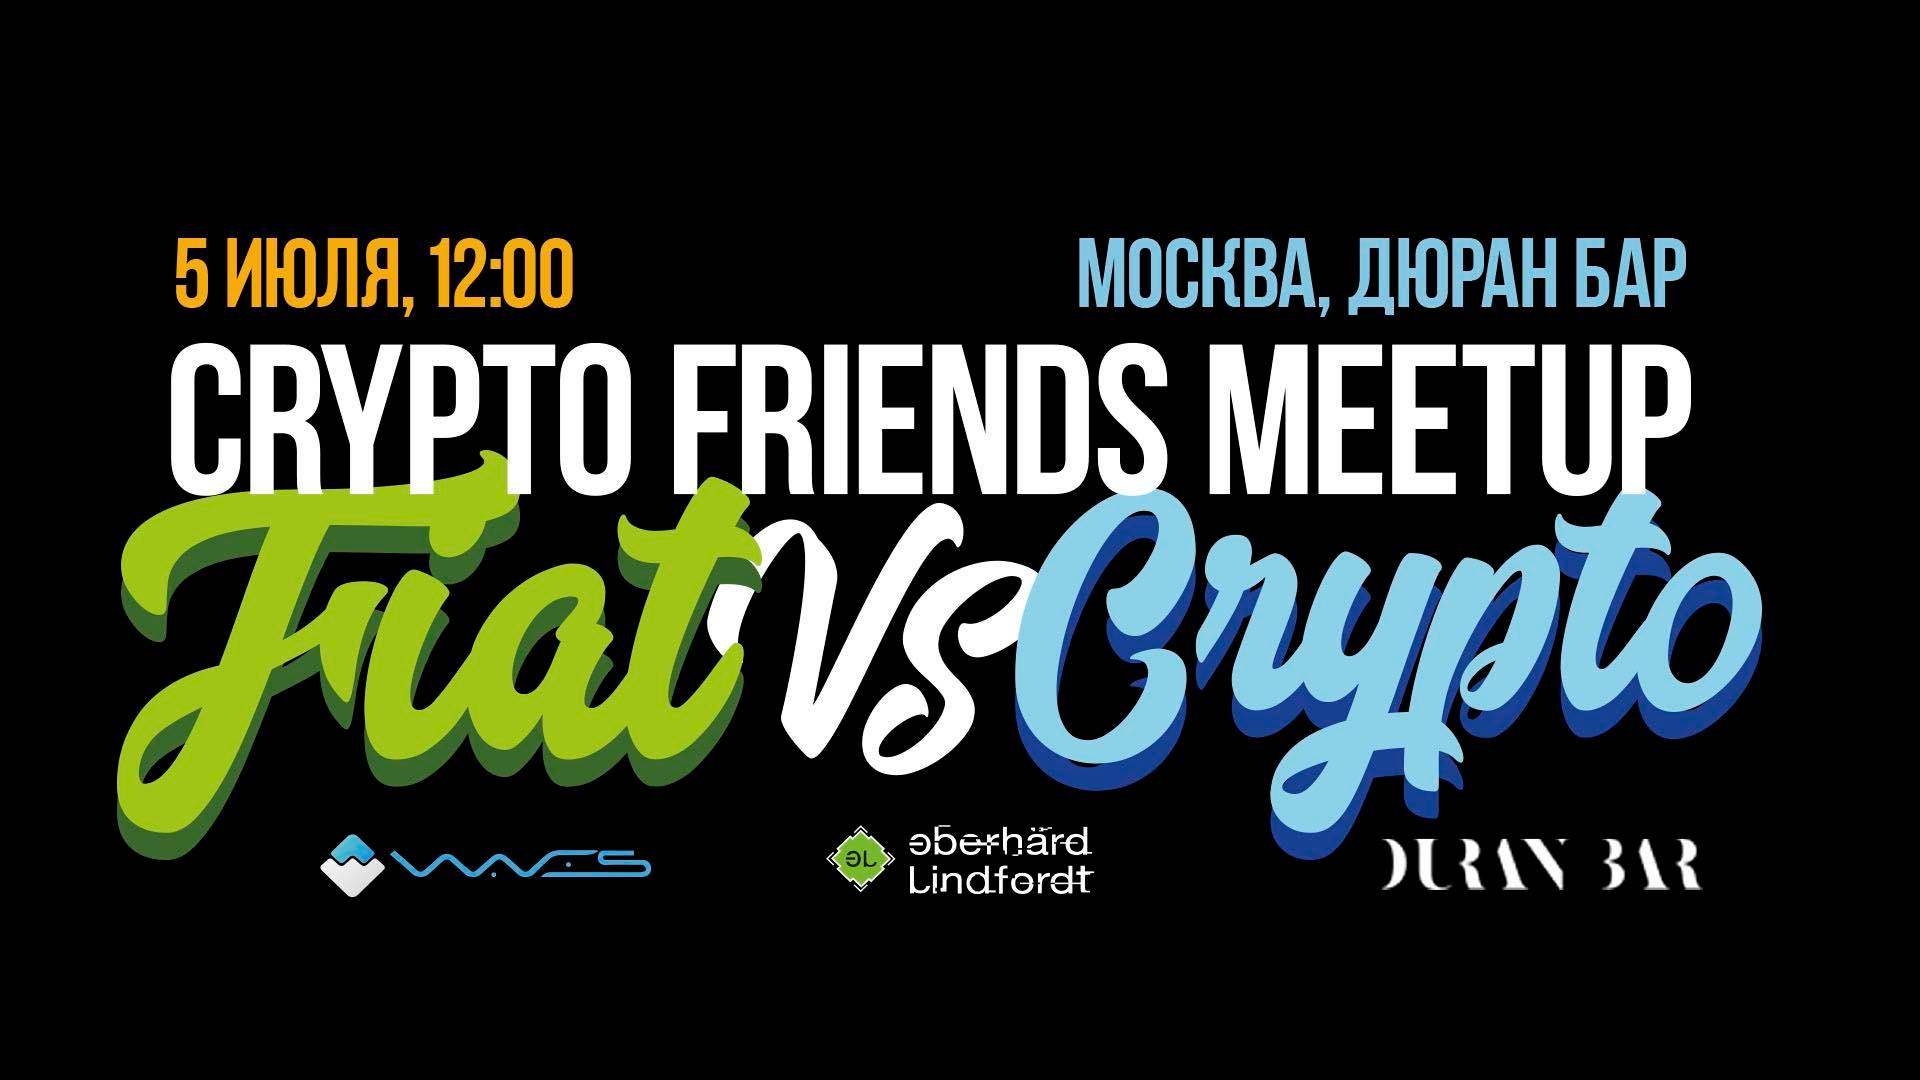 CRYPTO FRIENDS MEETUP MOSCOW